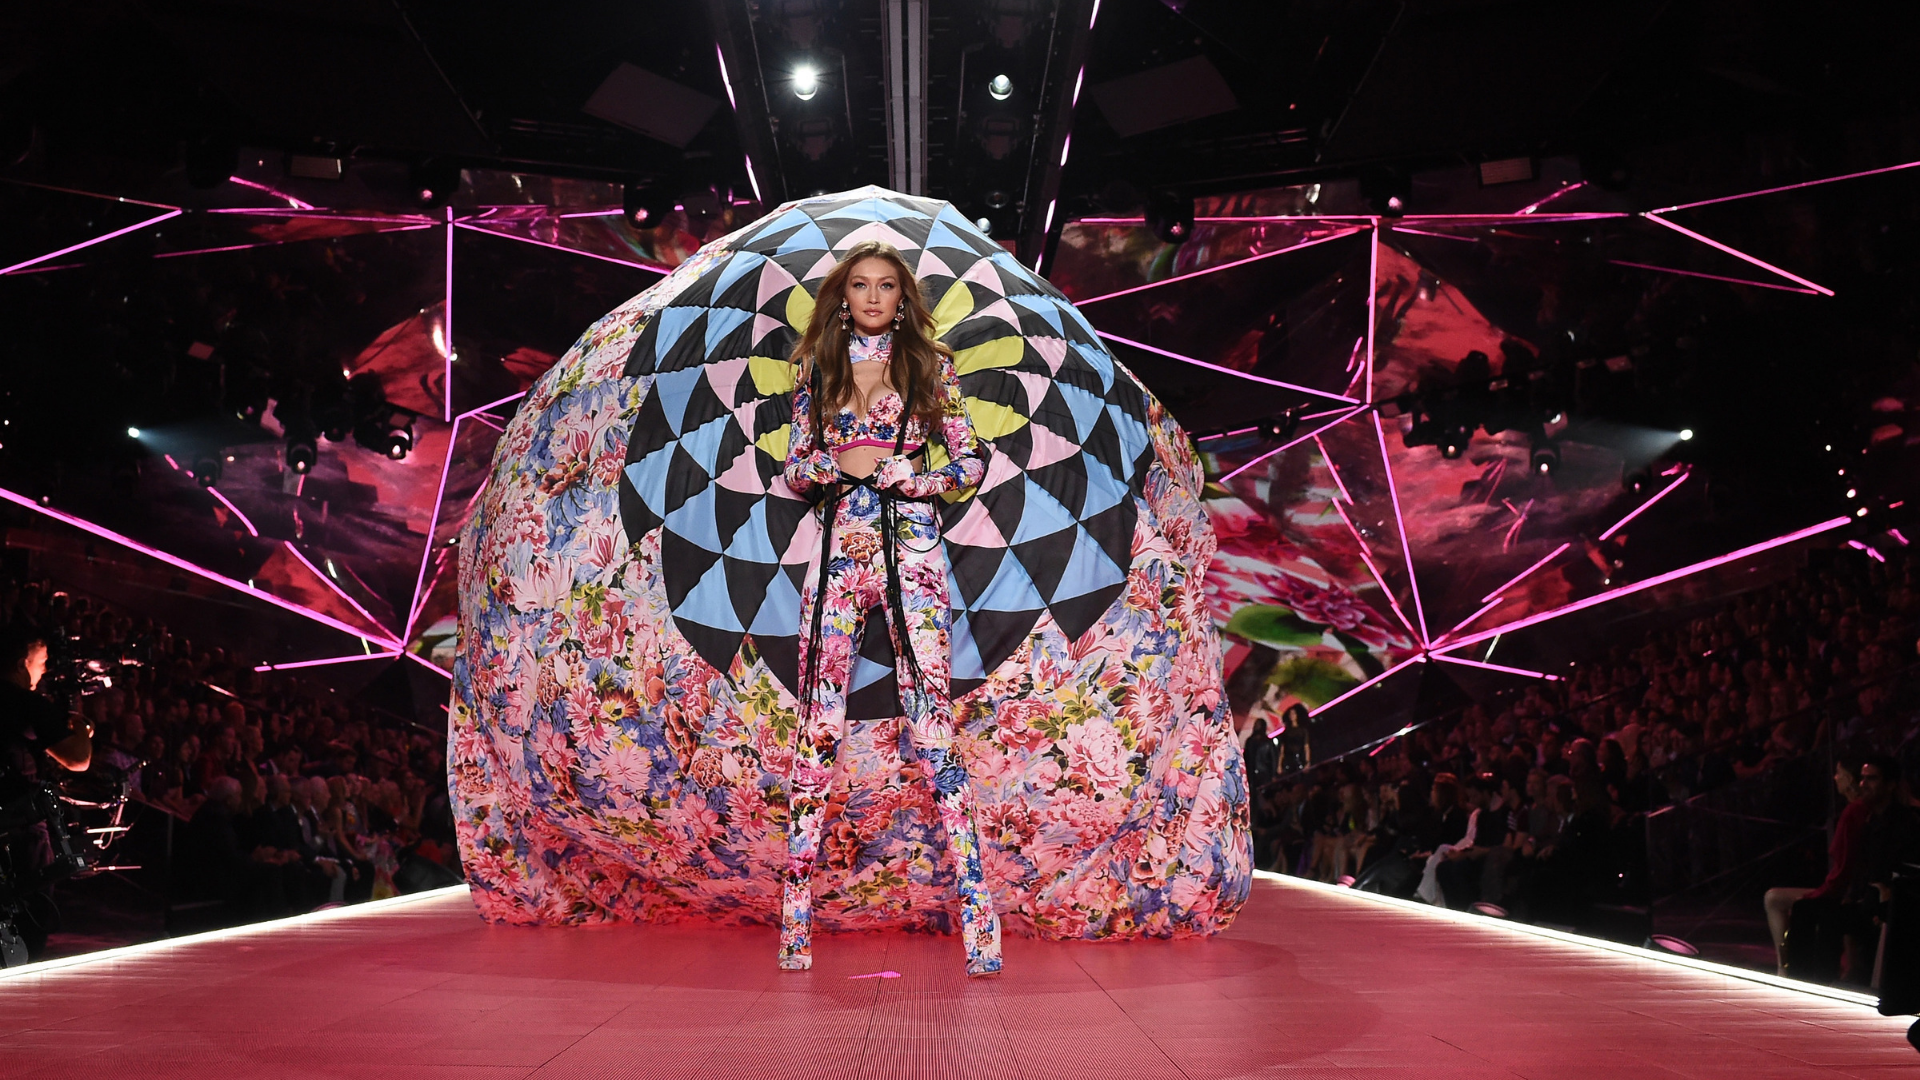 Interview: Mary Katrantzou On Her Sensational Collaboration With Victoria's Secret